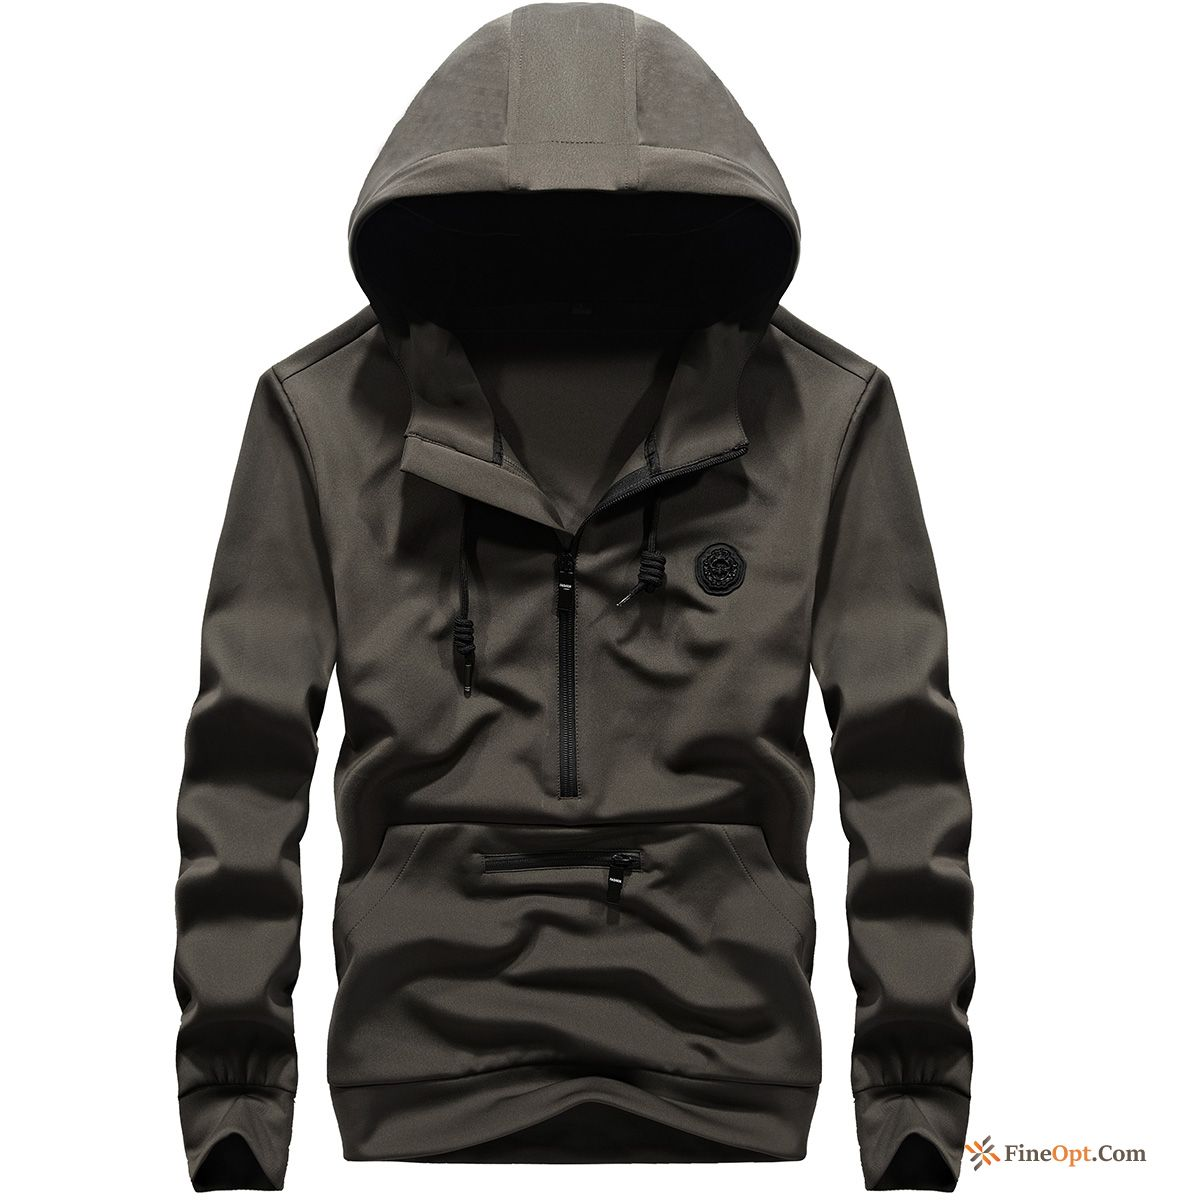 Coat Hooded Men's Hoodies Europe Trend Brand Sweatshirt Hoodies